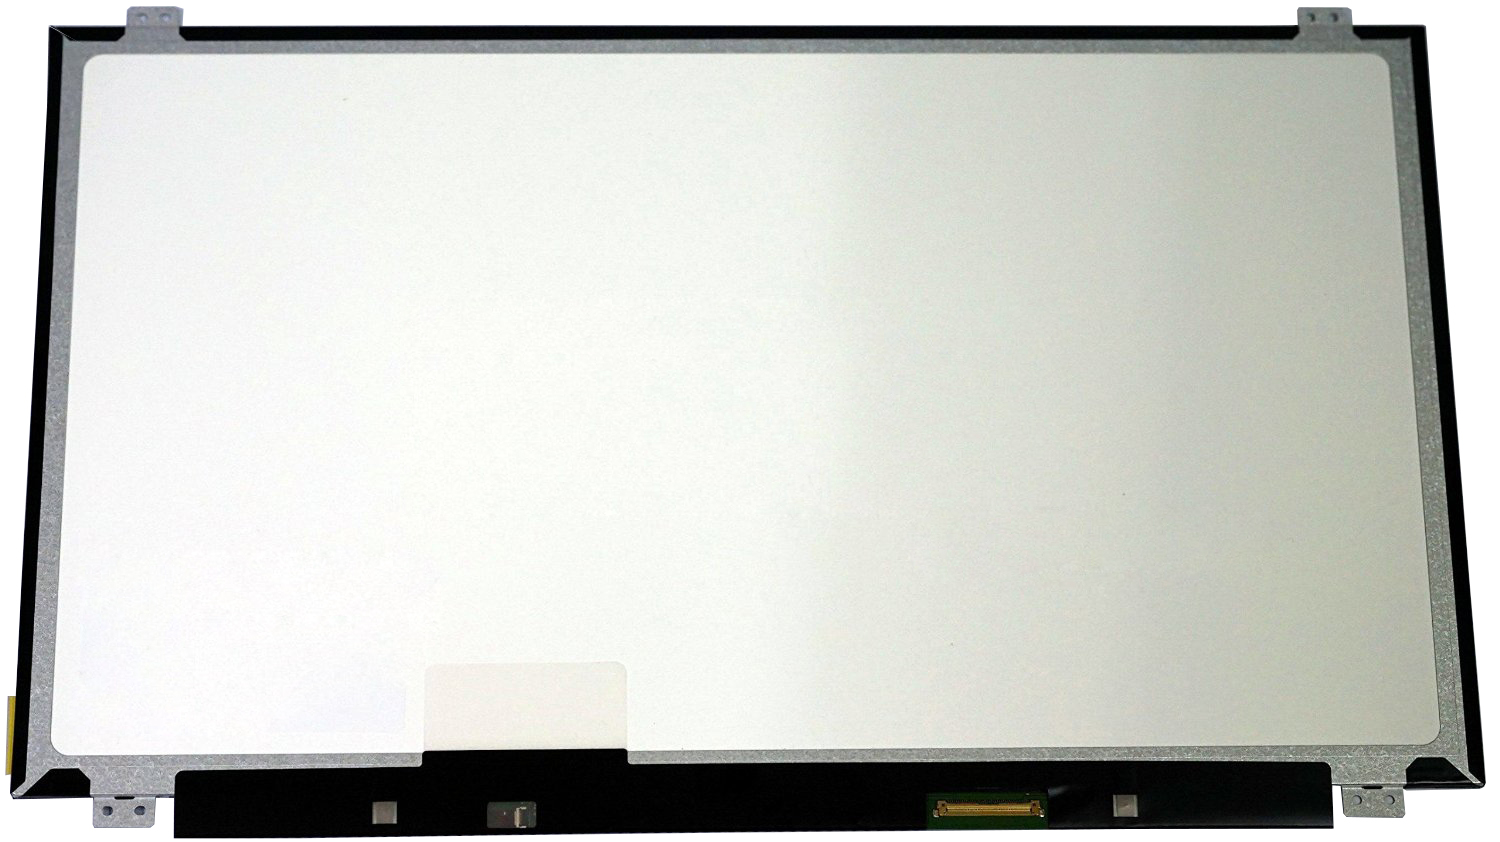 QuYing Laptop LCD Screen for Acer ASPIRE V5-572P V5-573G V5-571PG V7-581 V5-552P V5-573P E5-532T SERIES(15.6 1366x768 30pin) original new al12b32 laptop battery for acer aspire one 725 756 v5 171 b113 b113m al12x32 al12a31 al12b31 al12b32 2500mah